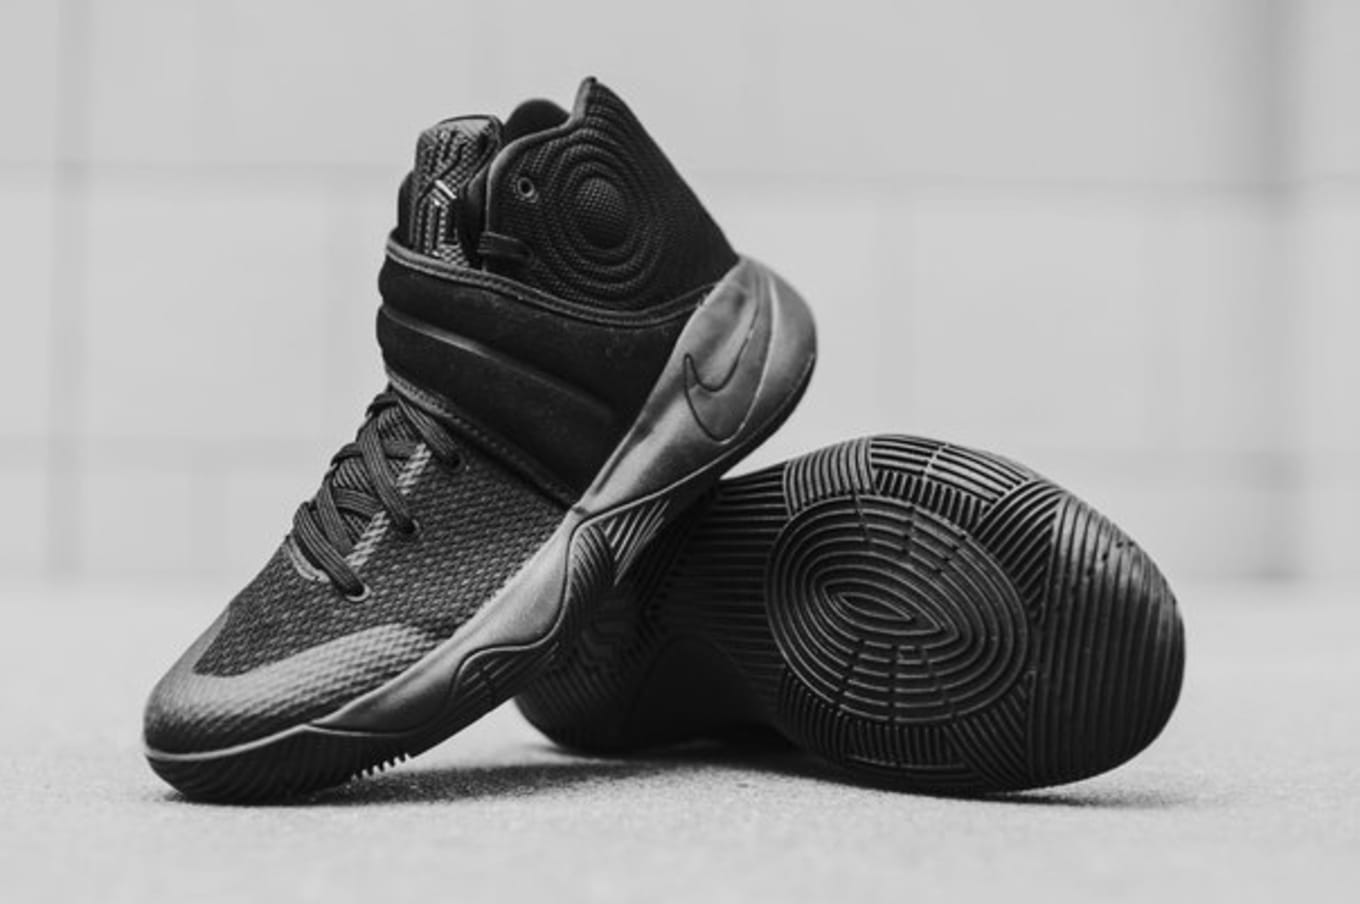 c51ced02b46d1d Nike Basketball blacks out on the latest for the young champ.